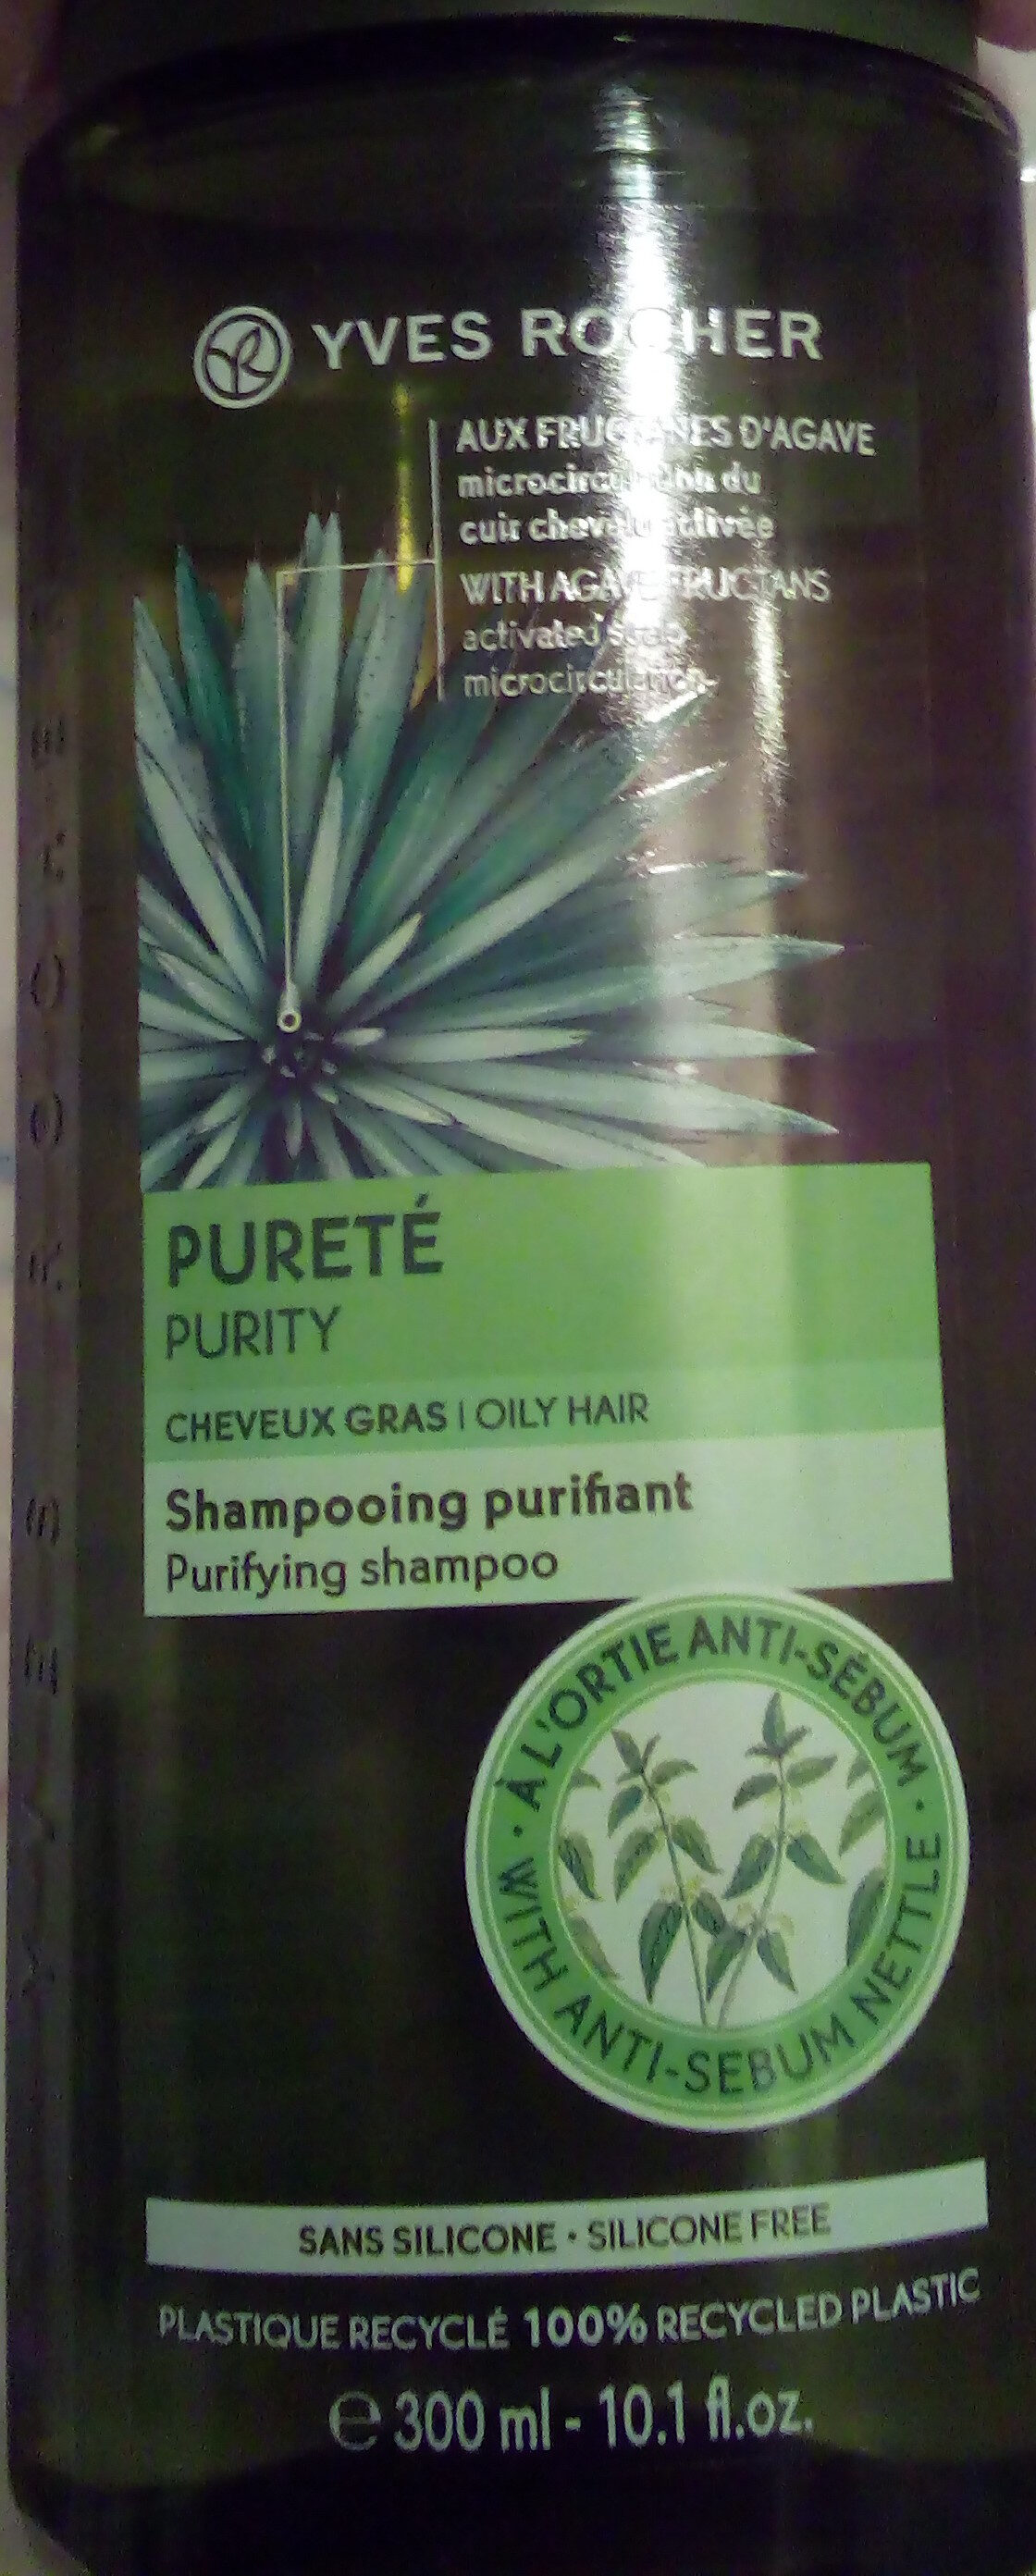 Shampooing purifiant aux fructanes d'agaves - Product